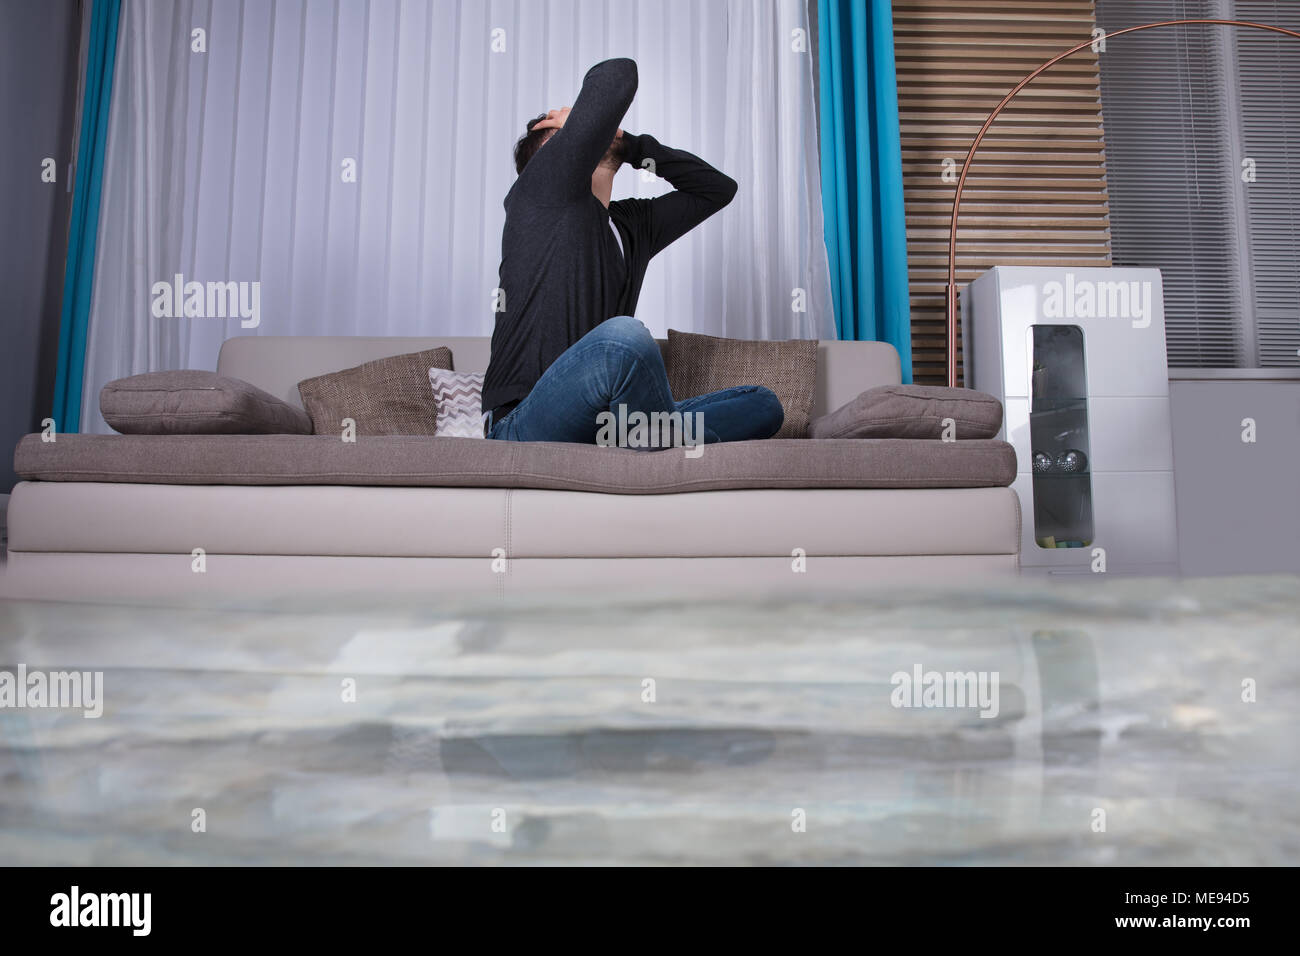 Upset  Man On Sofa With Hands On Head In Room Flooded With Water - Stock Image